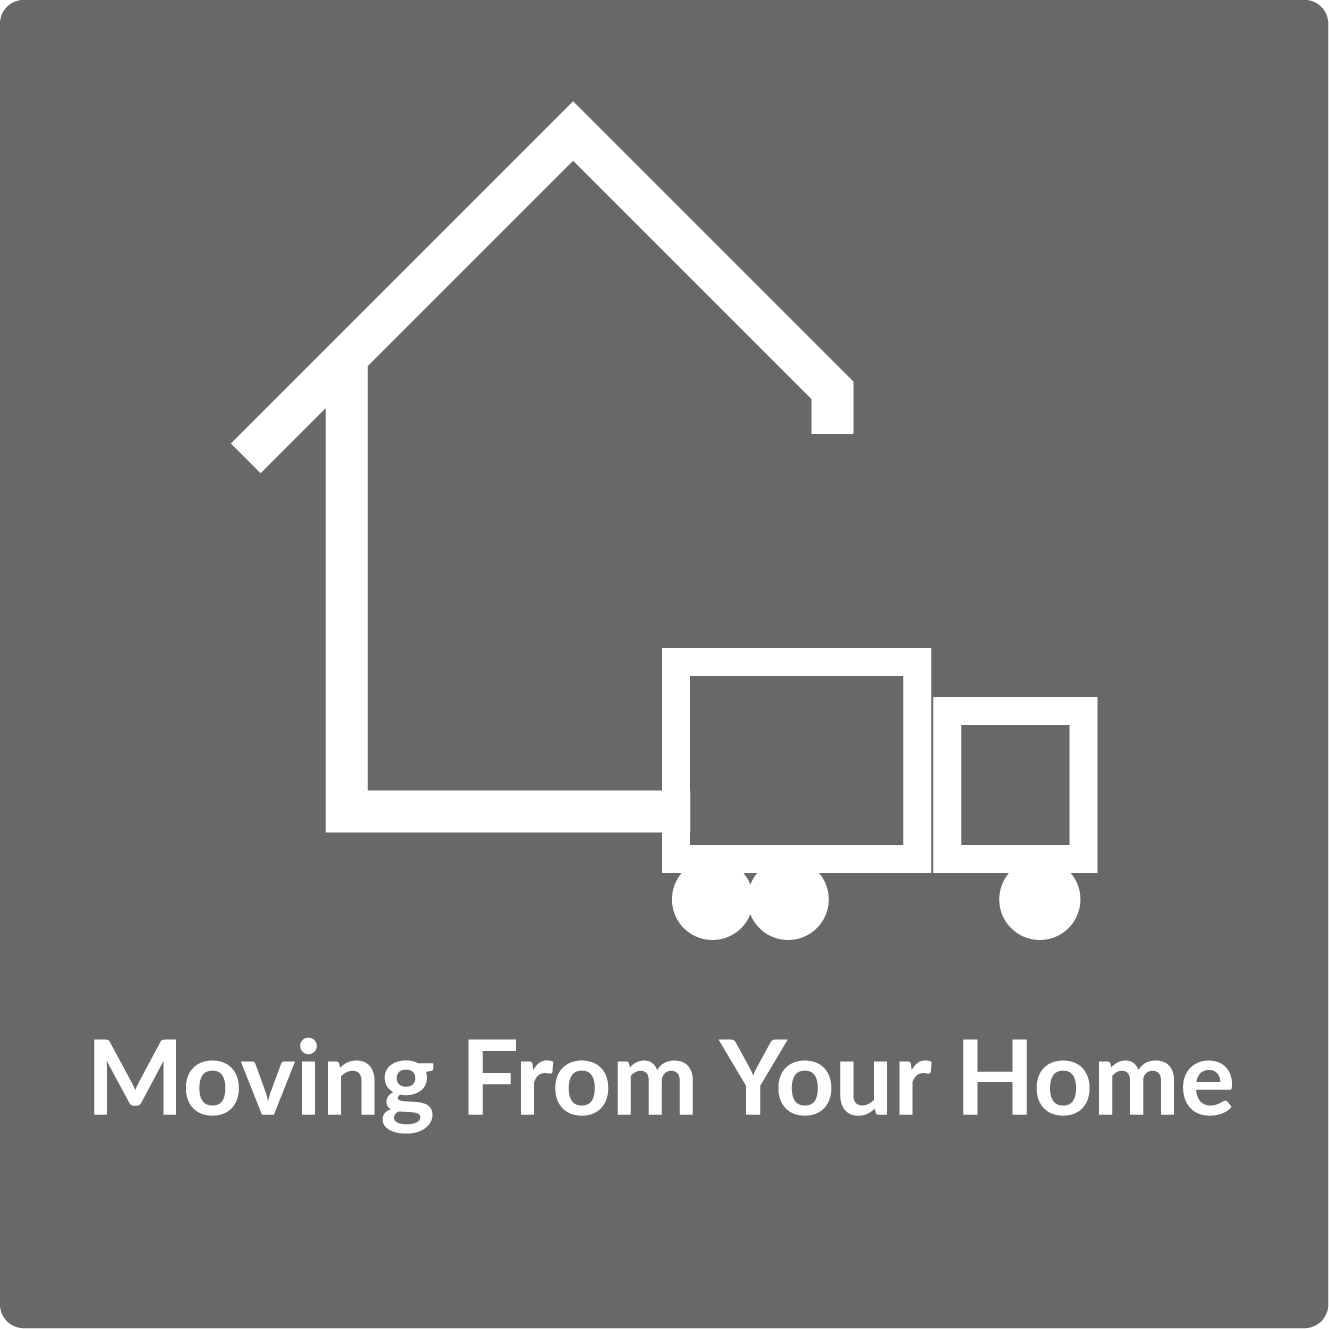 Moving from your home